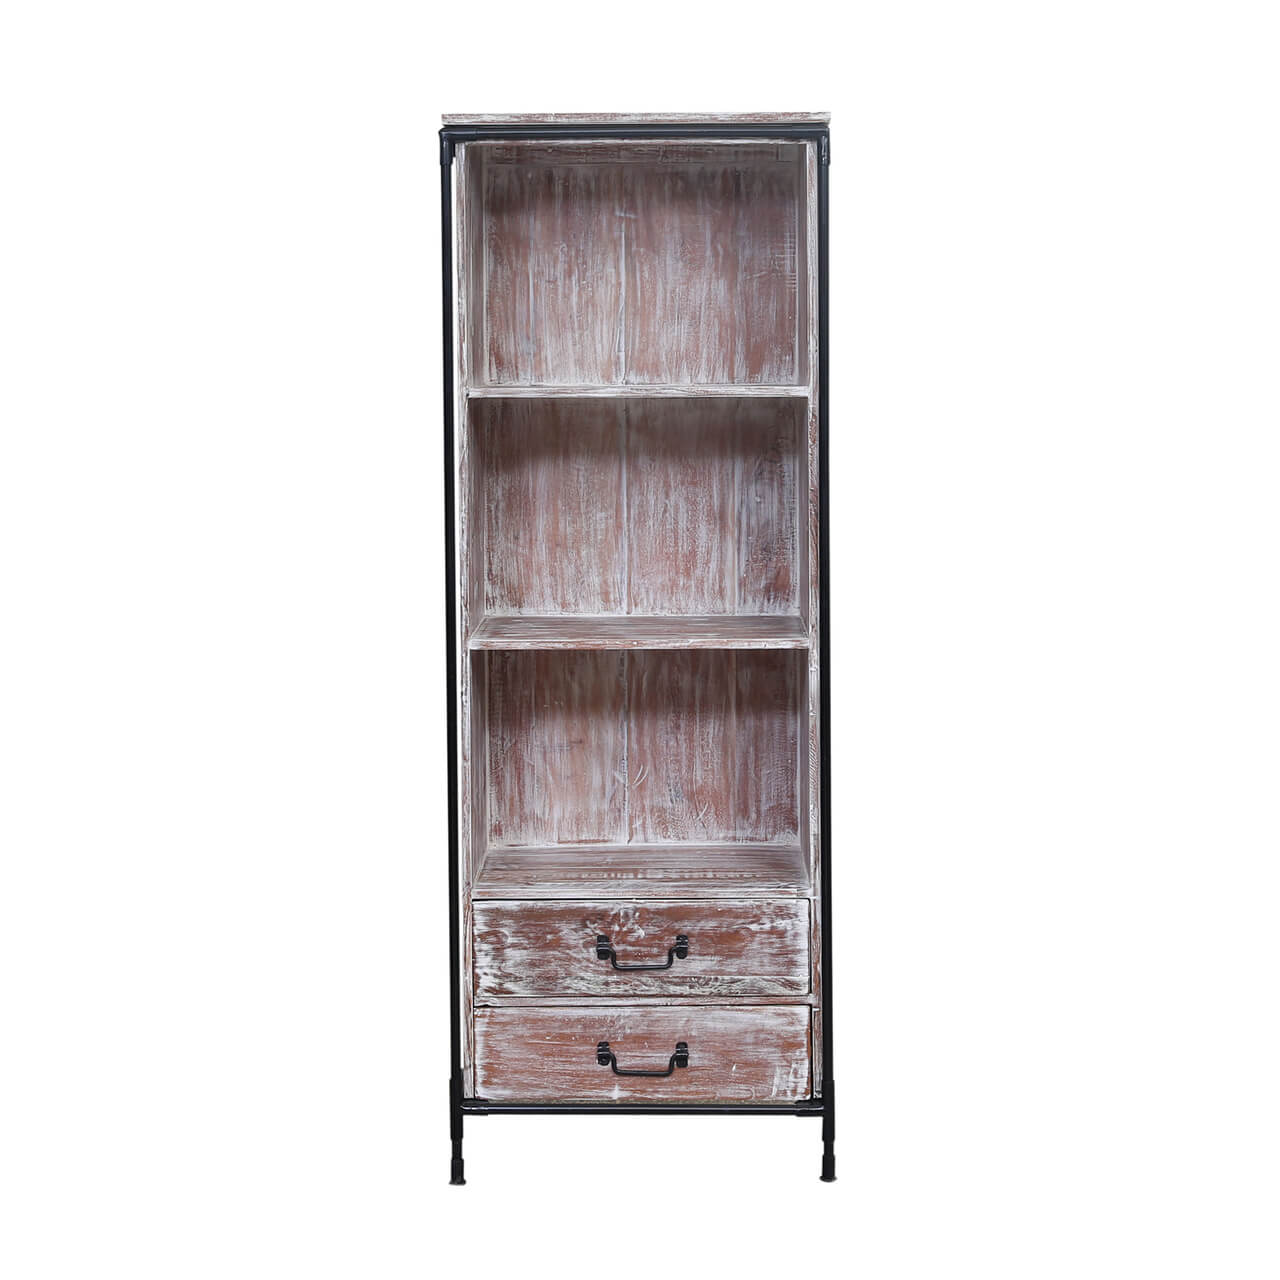 Cowiche Rustic Reclaimed Wood Open Shelves Industrial Display Unit